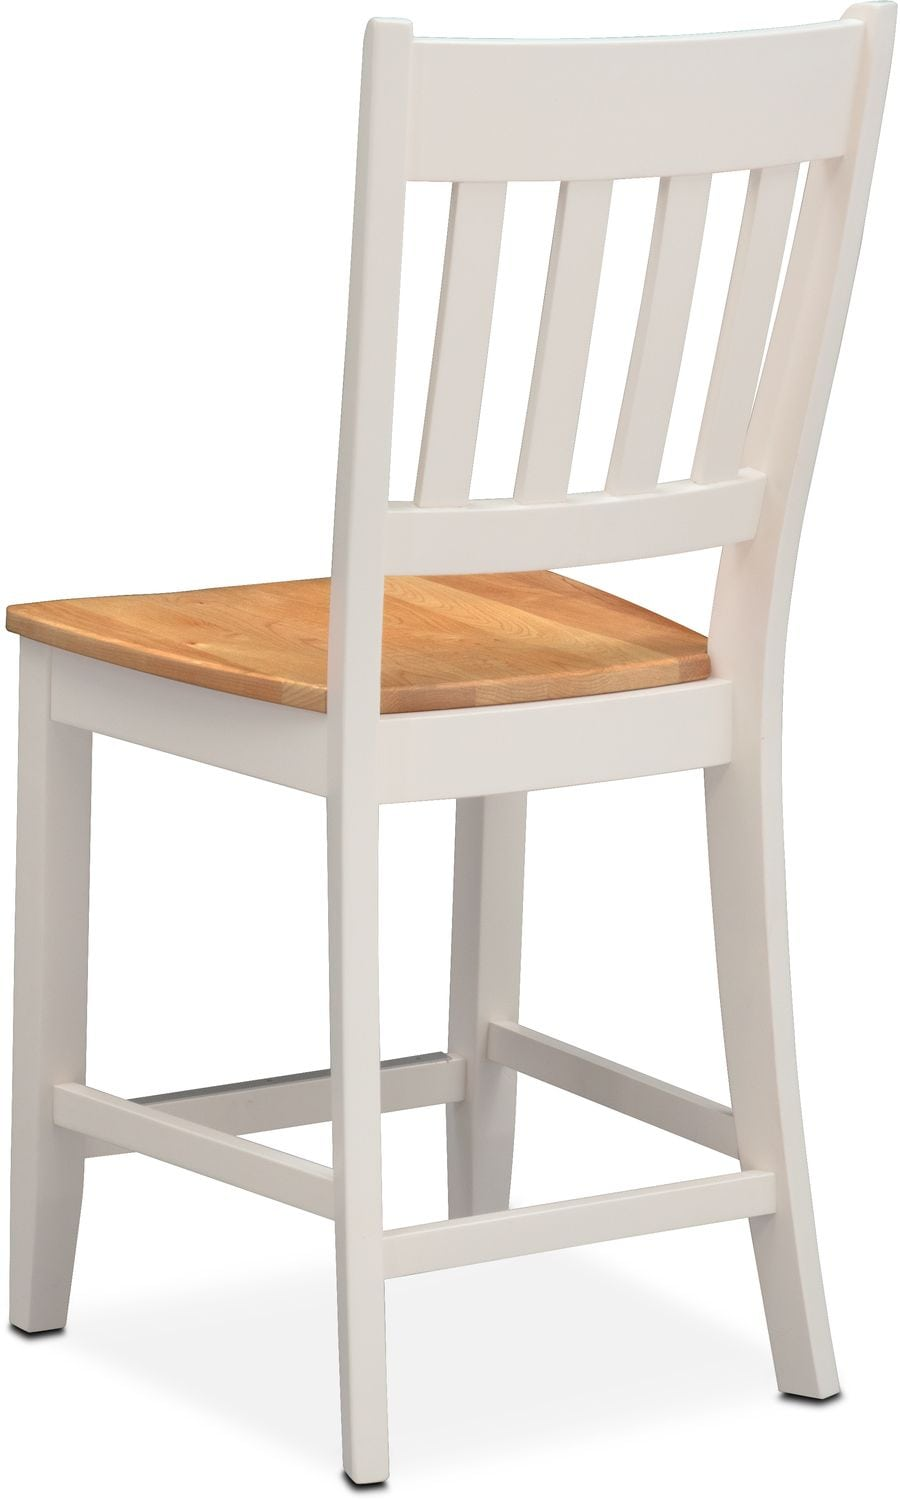 Nantucket Counter Height Slat Back Chair Maple And White American Signatu